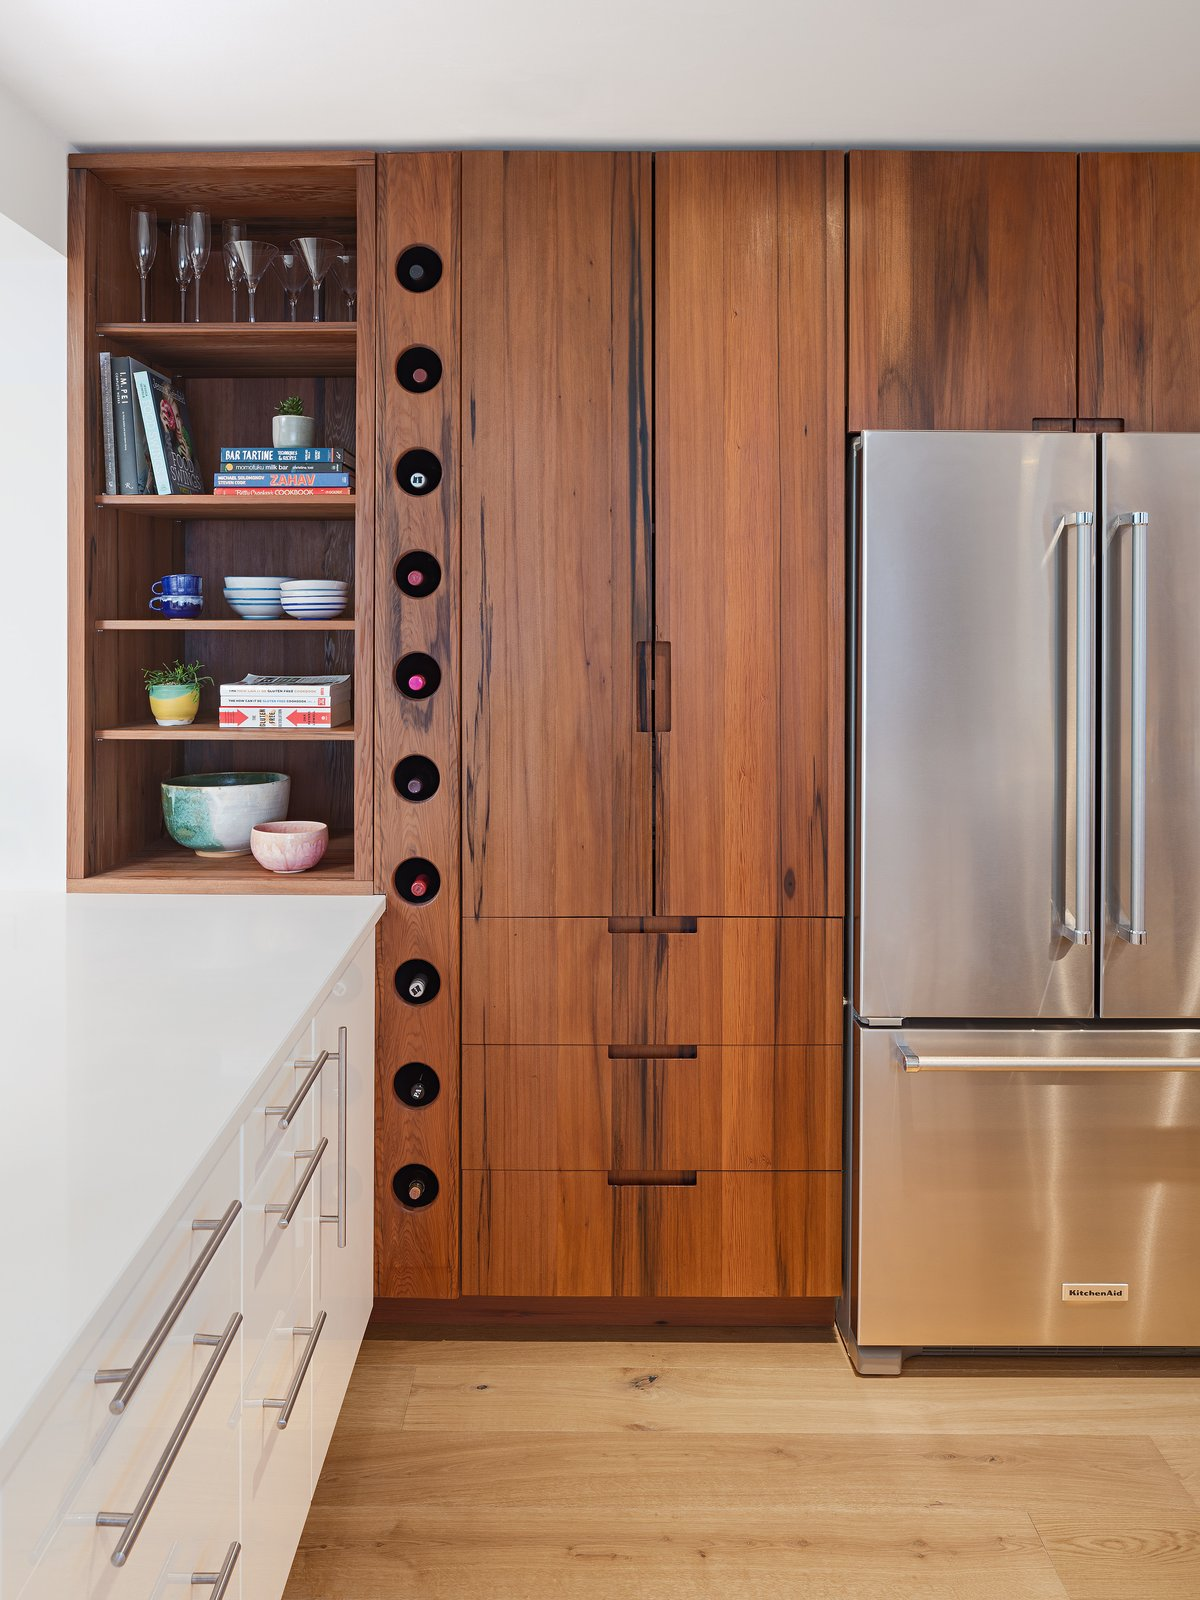 Kitchen, Refrigerator, Engineered Quartz Counter, Wood Counter, White Cabinet, Wood Cabinet, and Light Hardwood Floor Custom spring loaded wine rack made with reclaimed American redwood   Wayne Residence